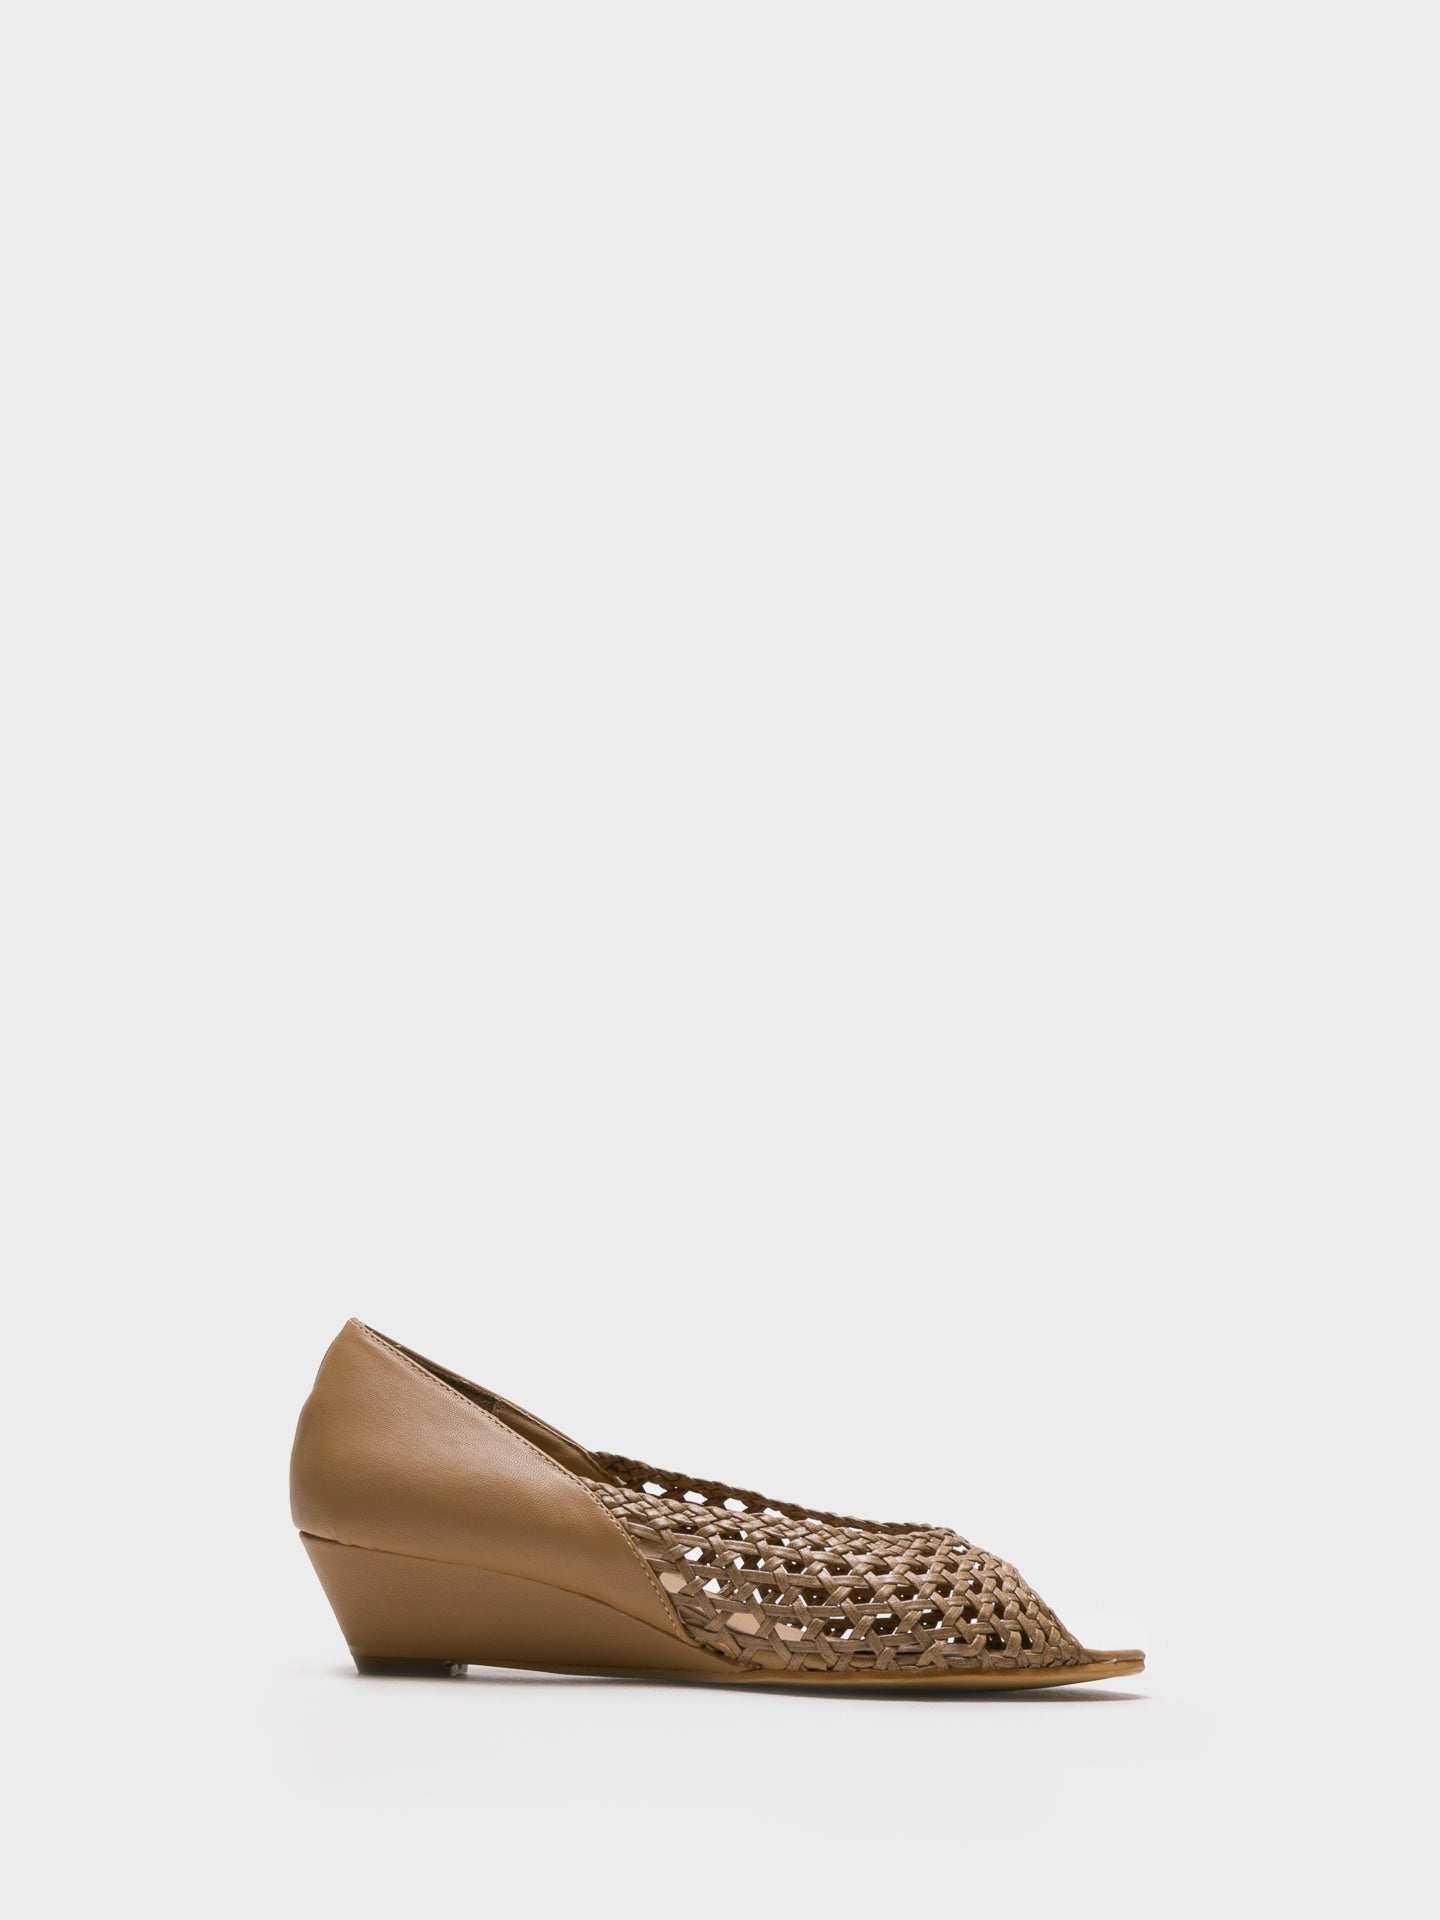 Foreva SandyBrown Wedge Shoes